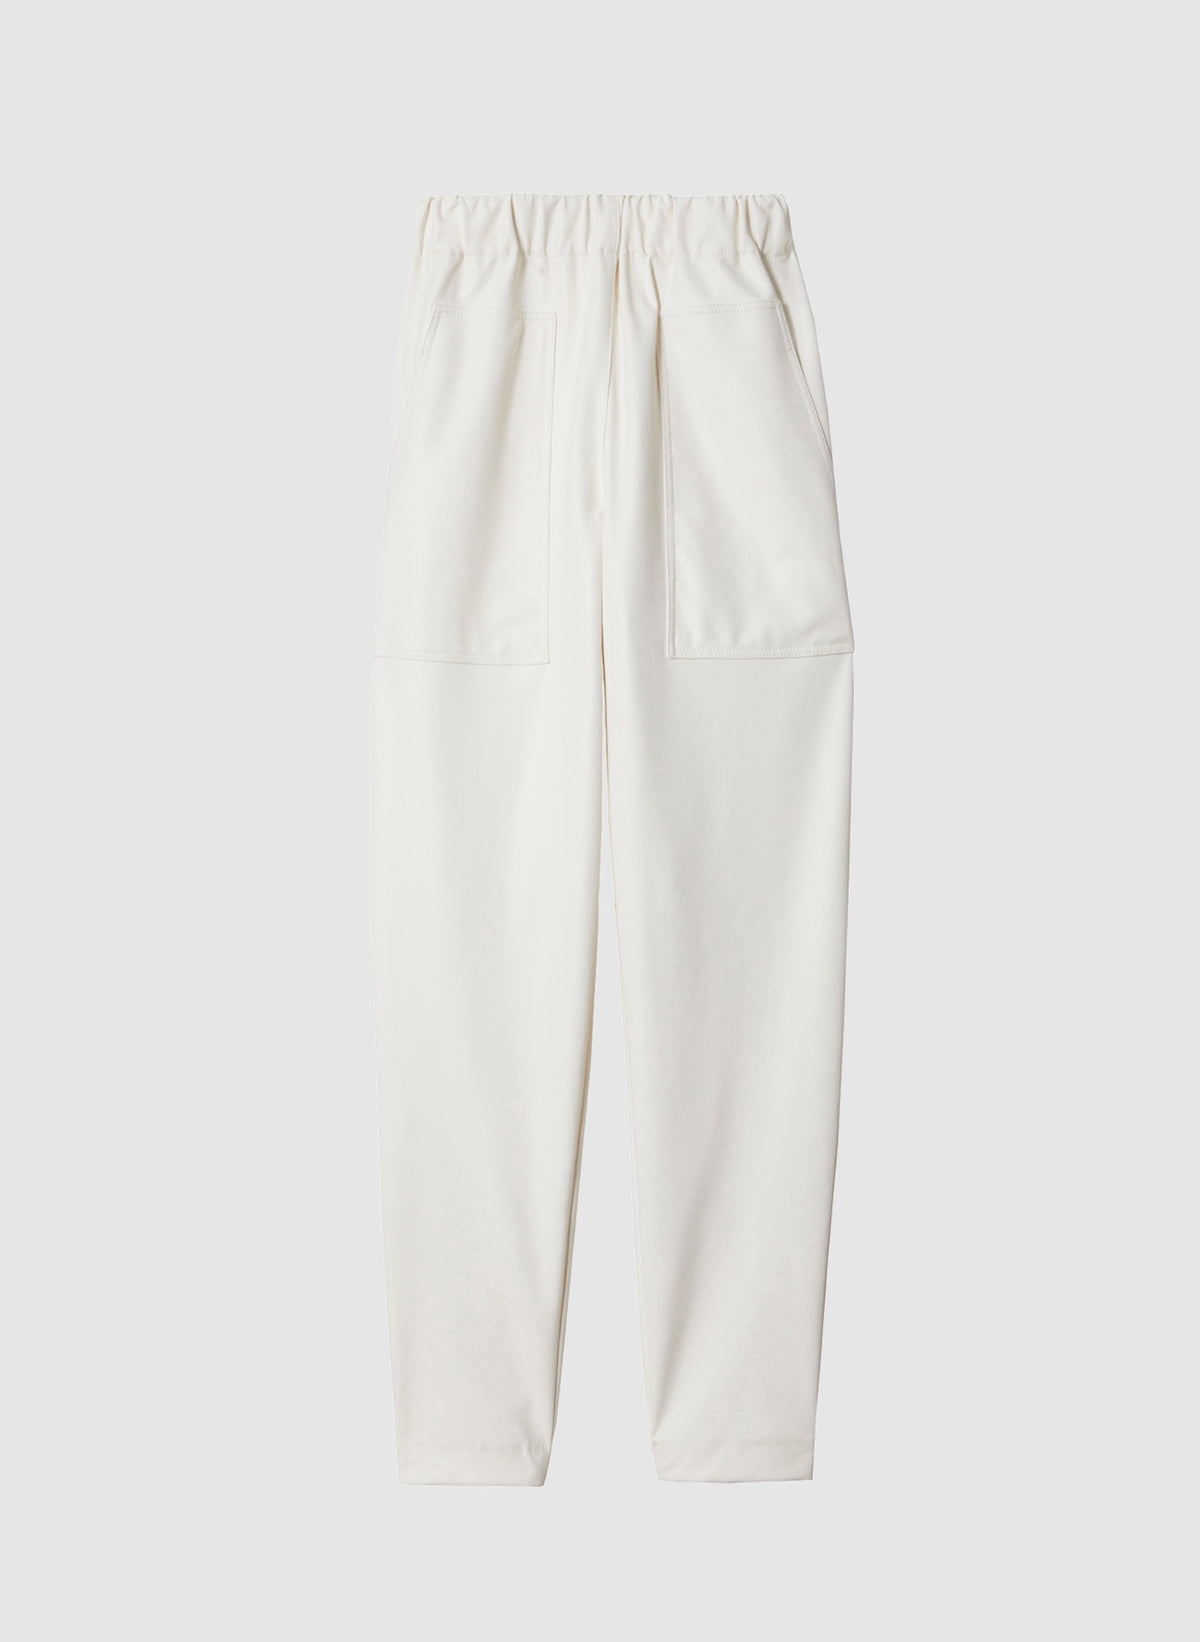 Faux-Leather Pants - White